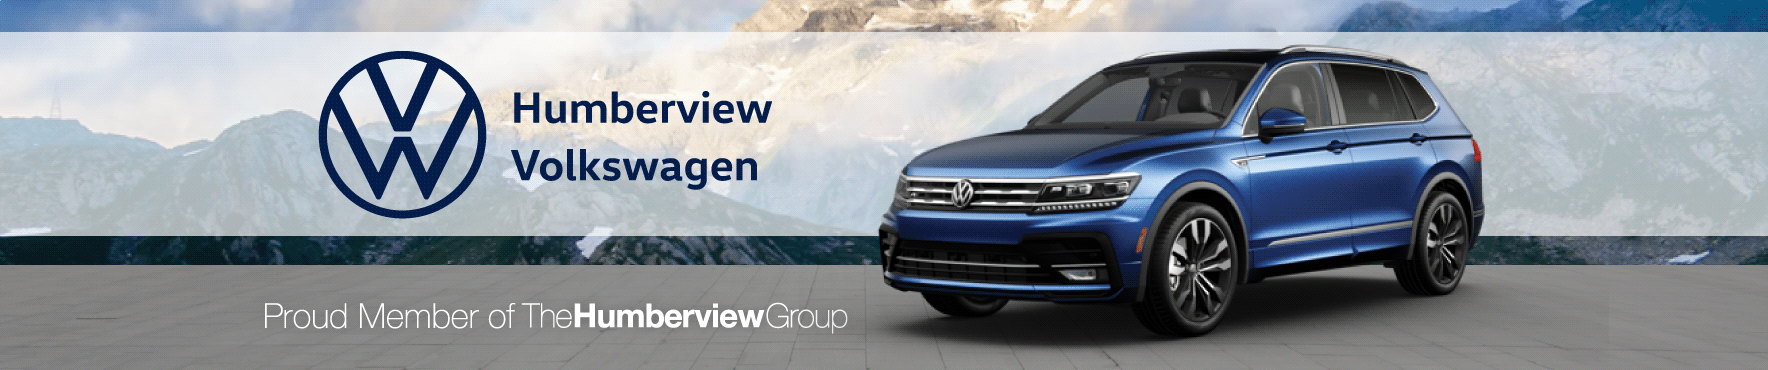 About Us - Humberview Volkswagen